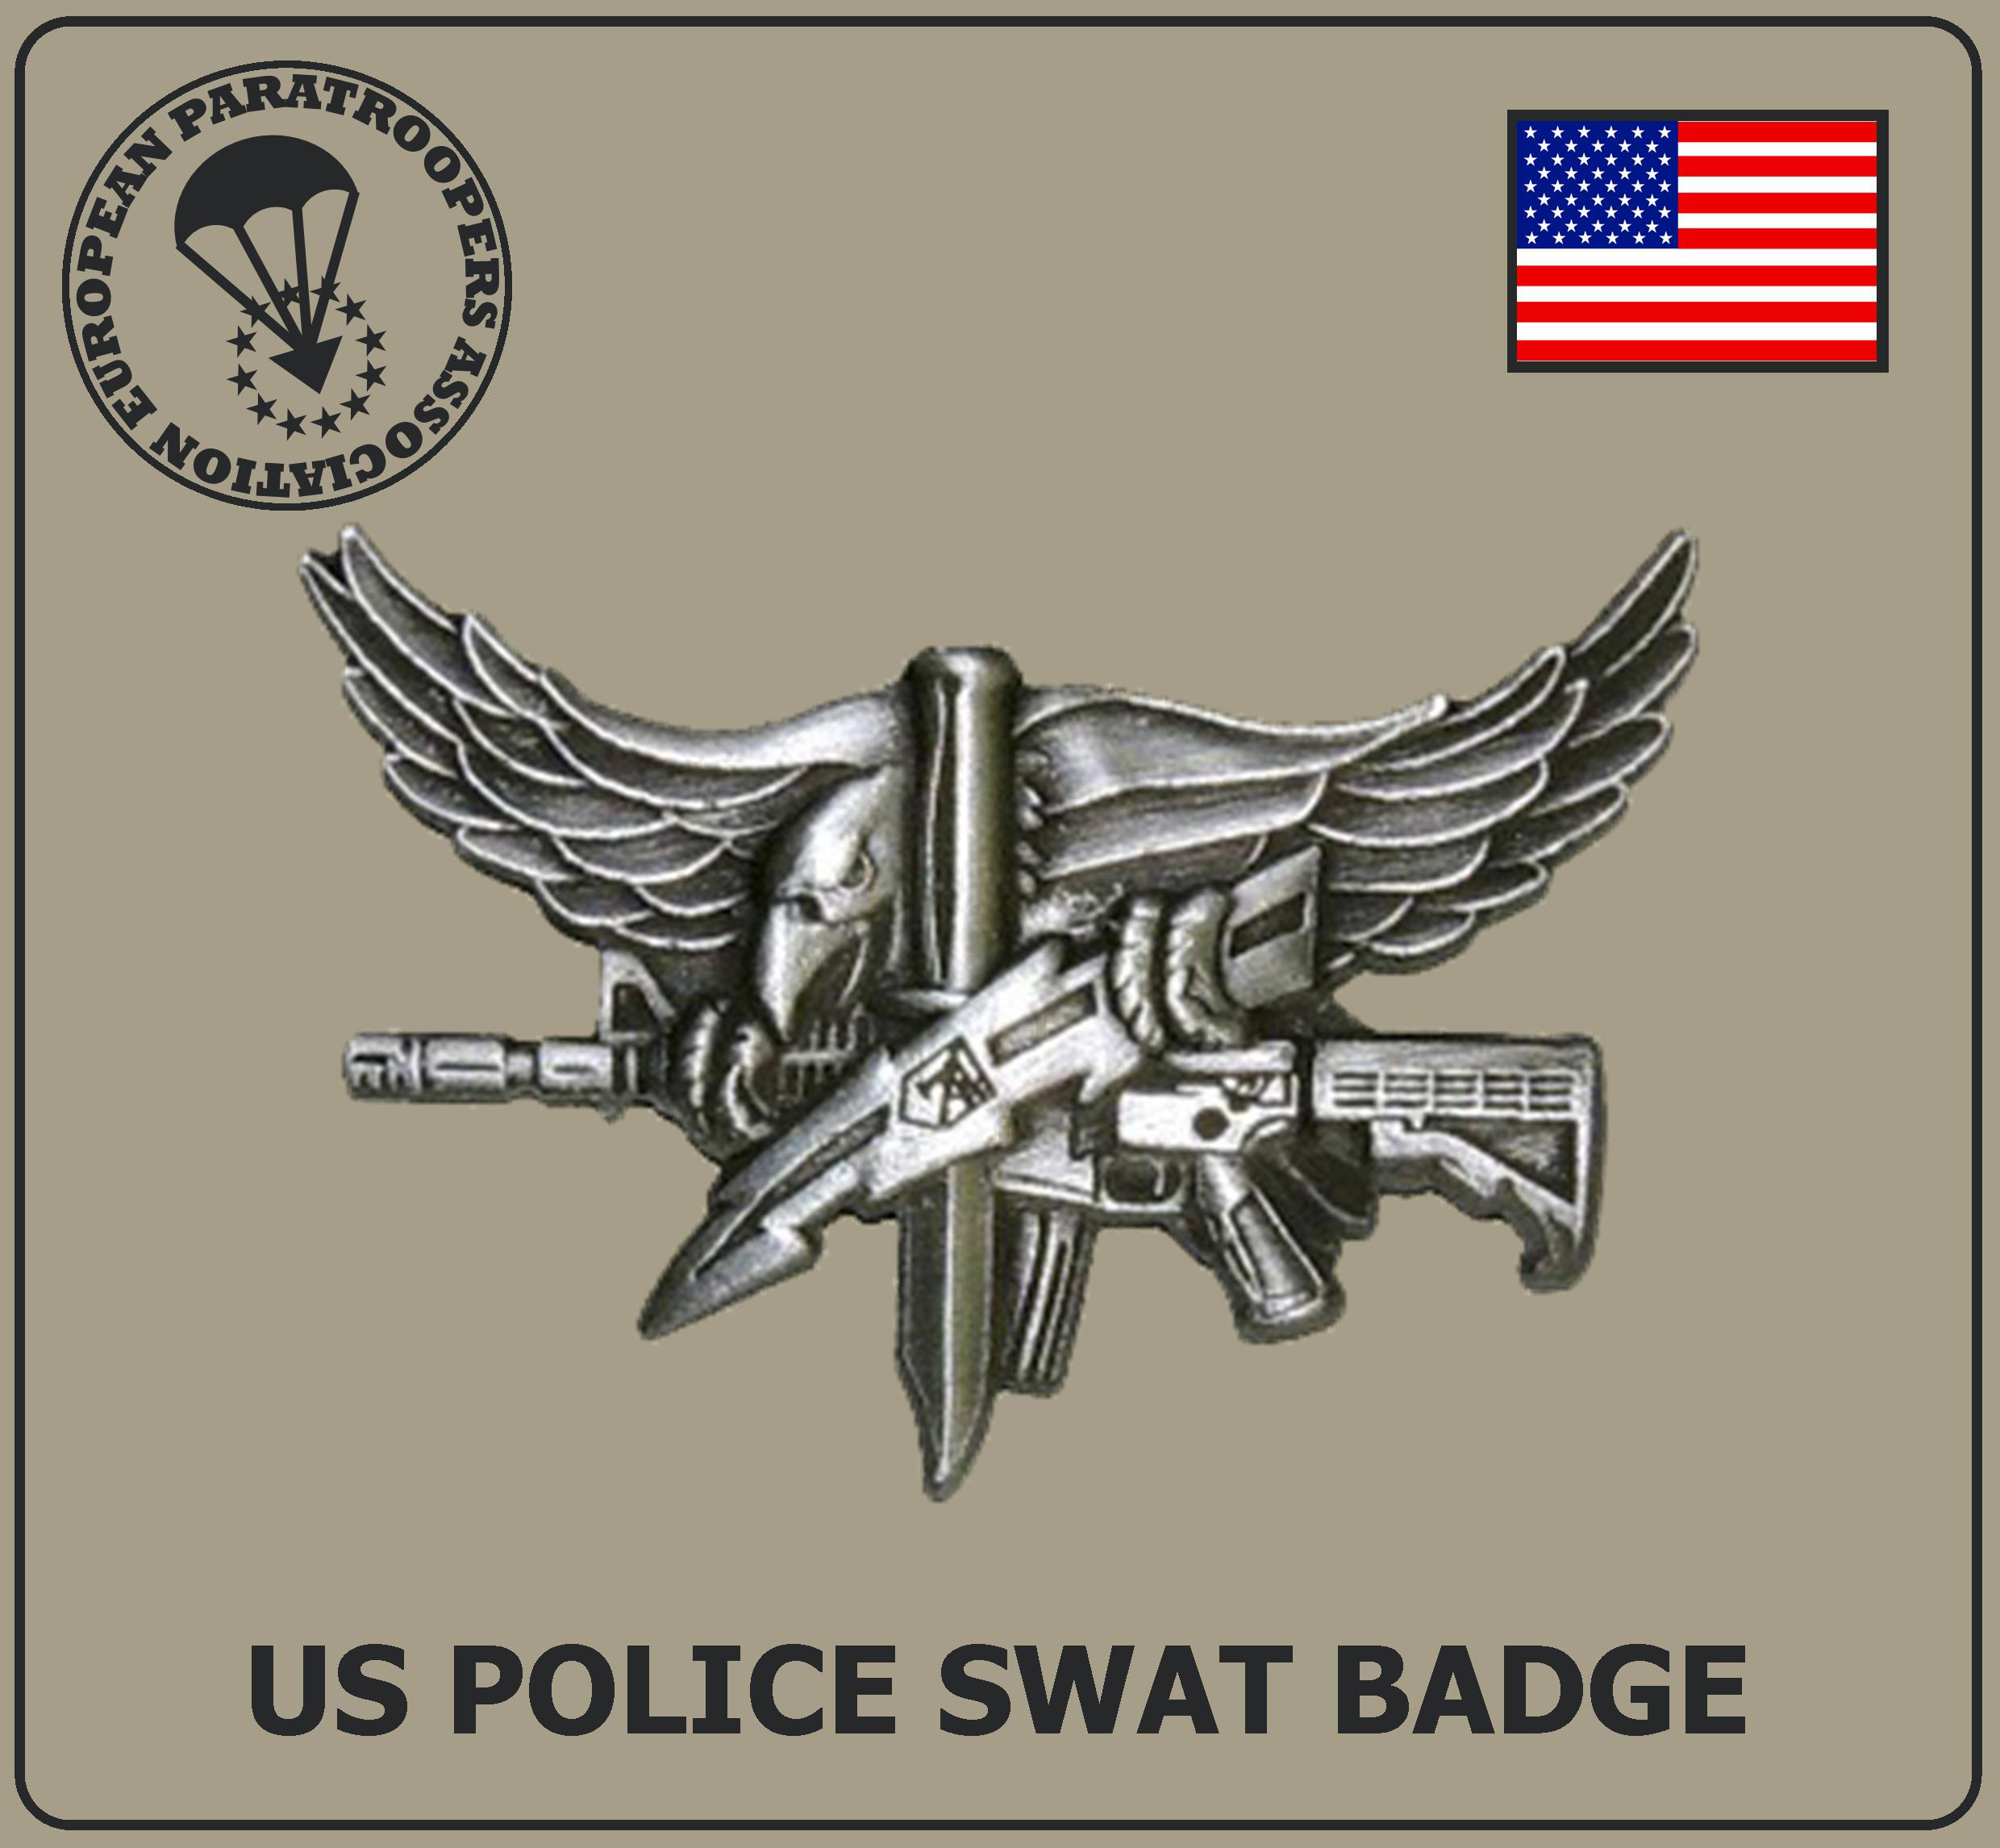 US POLICE SWAT BADGE